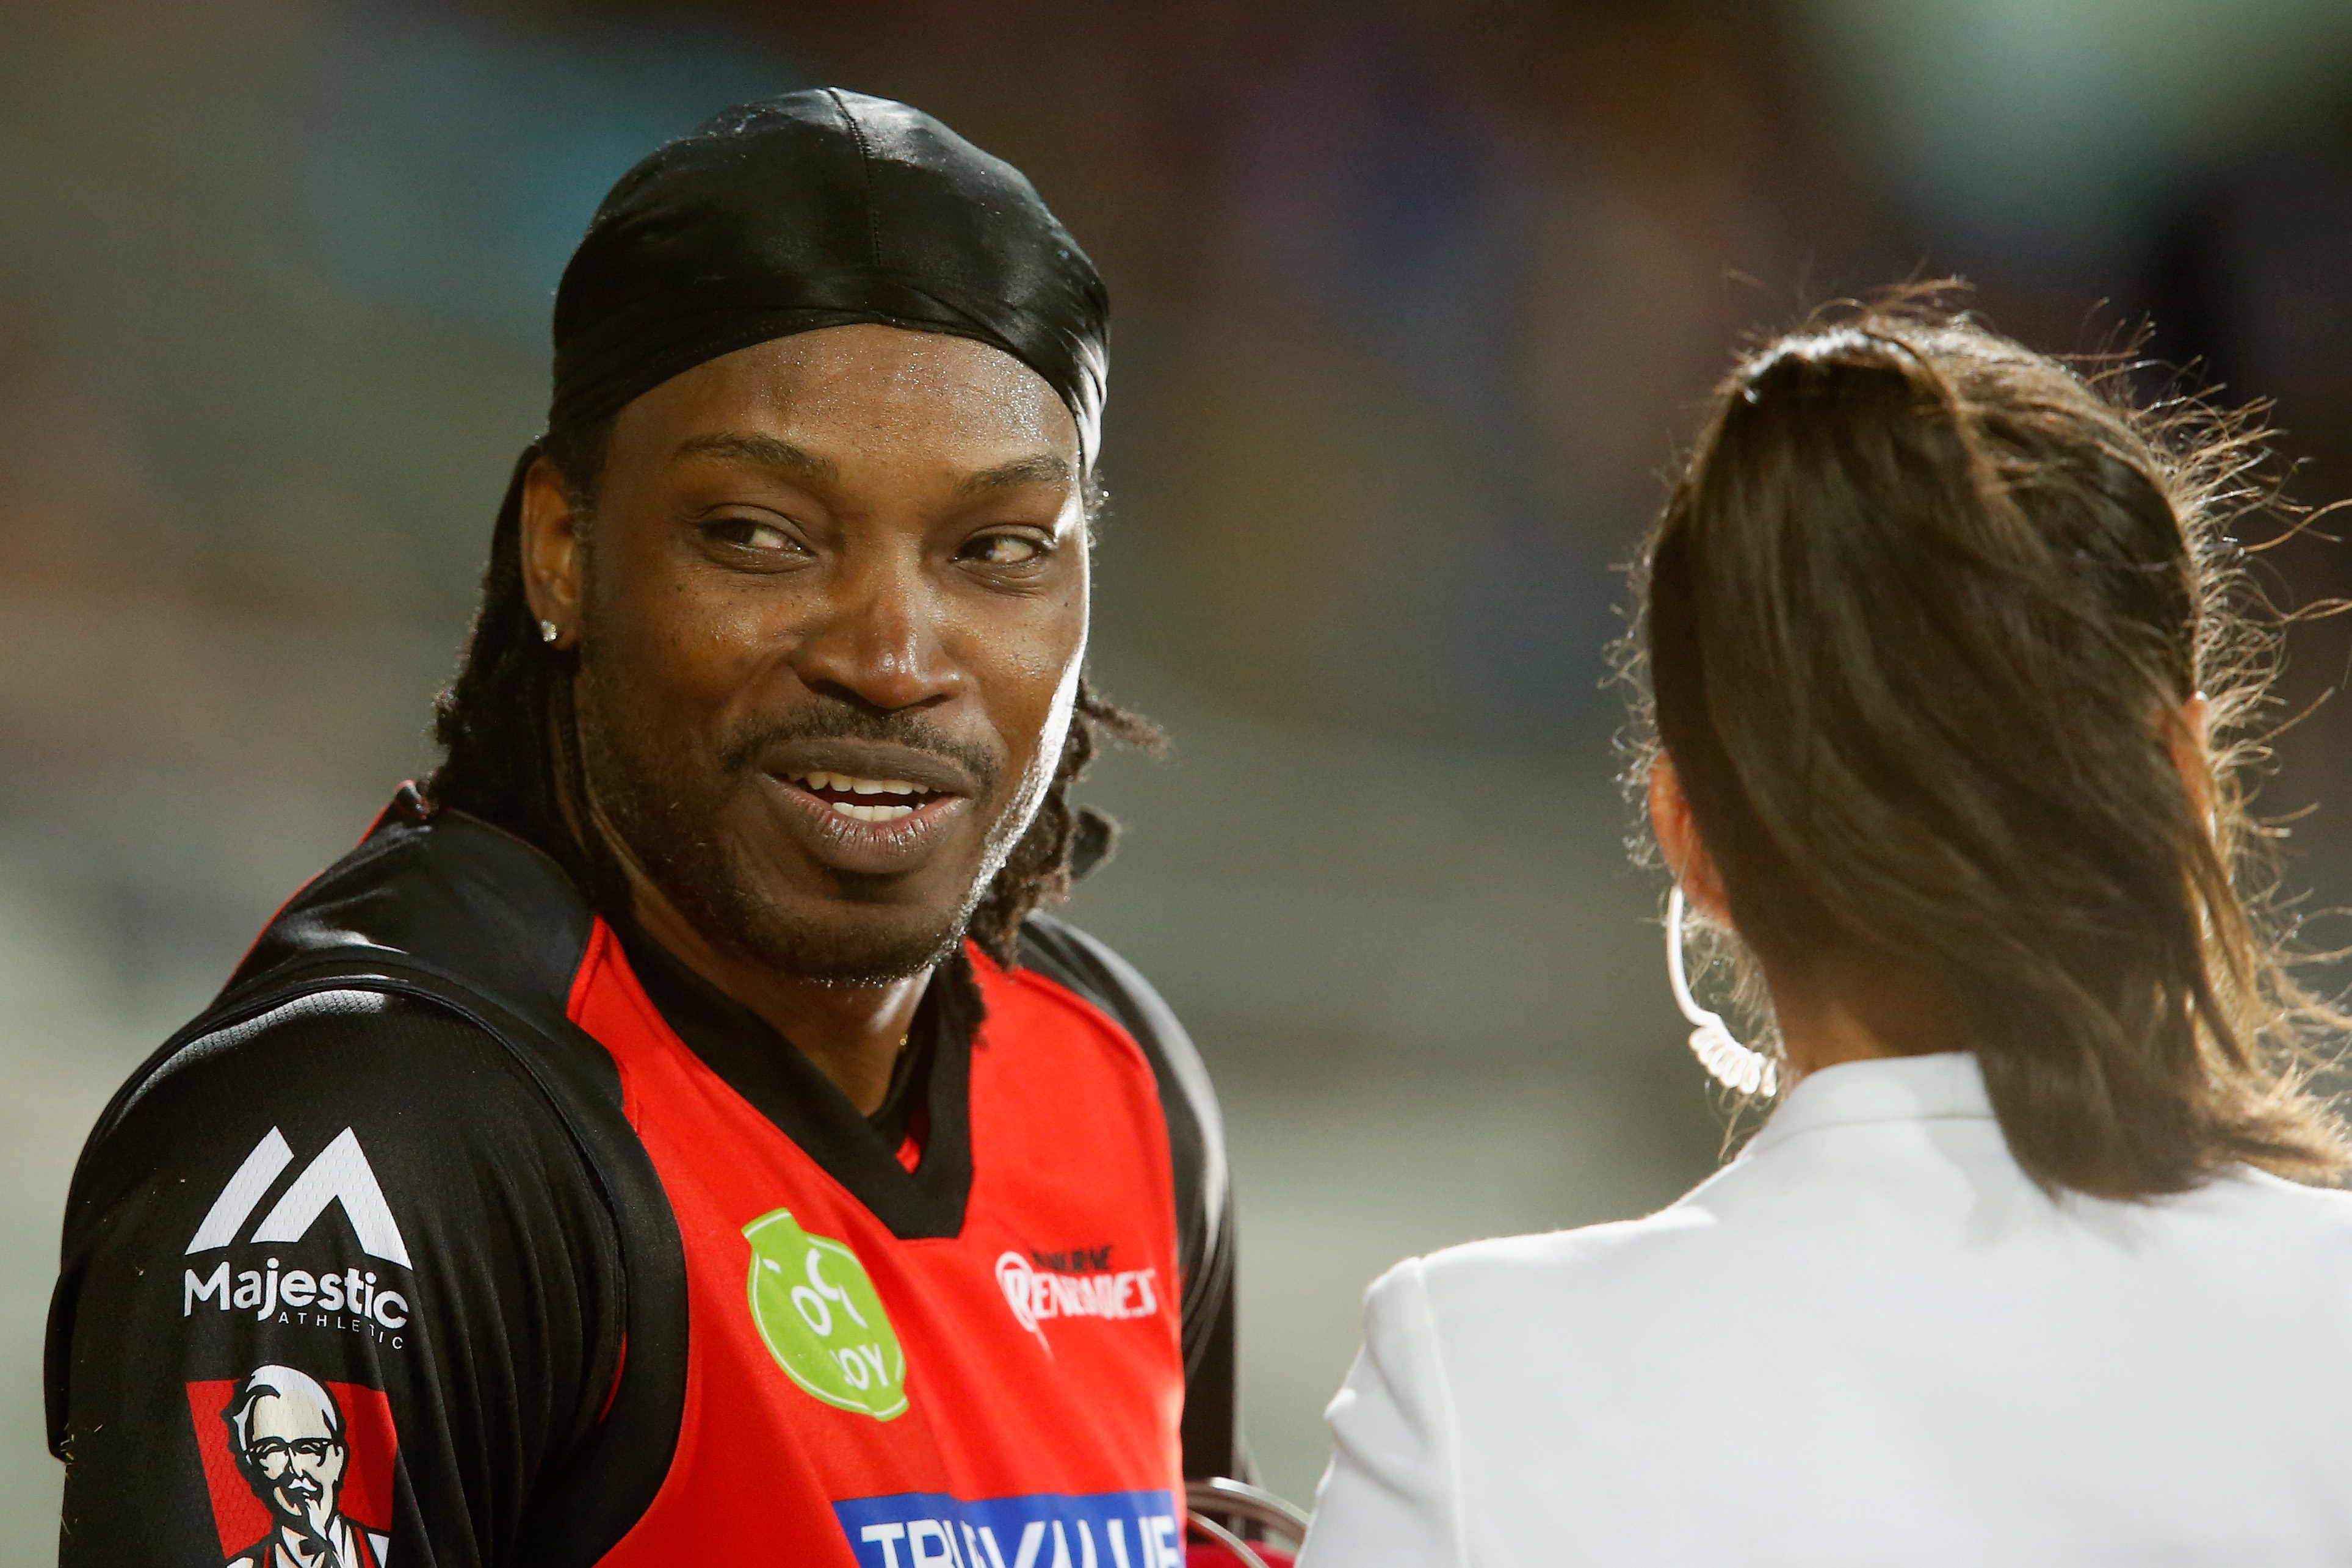 Chris Gayle of the Melbourne Renegades gives a TV interview to Mel Mclaughlin during the Big Bash League match between the Hobart Hurricanes and the Melbourne Renegades at Blundstone Arena in Hobart, Australia, on Jan. 4, 2016